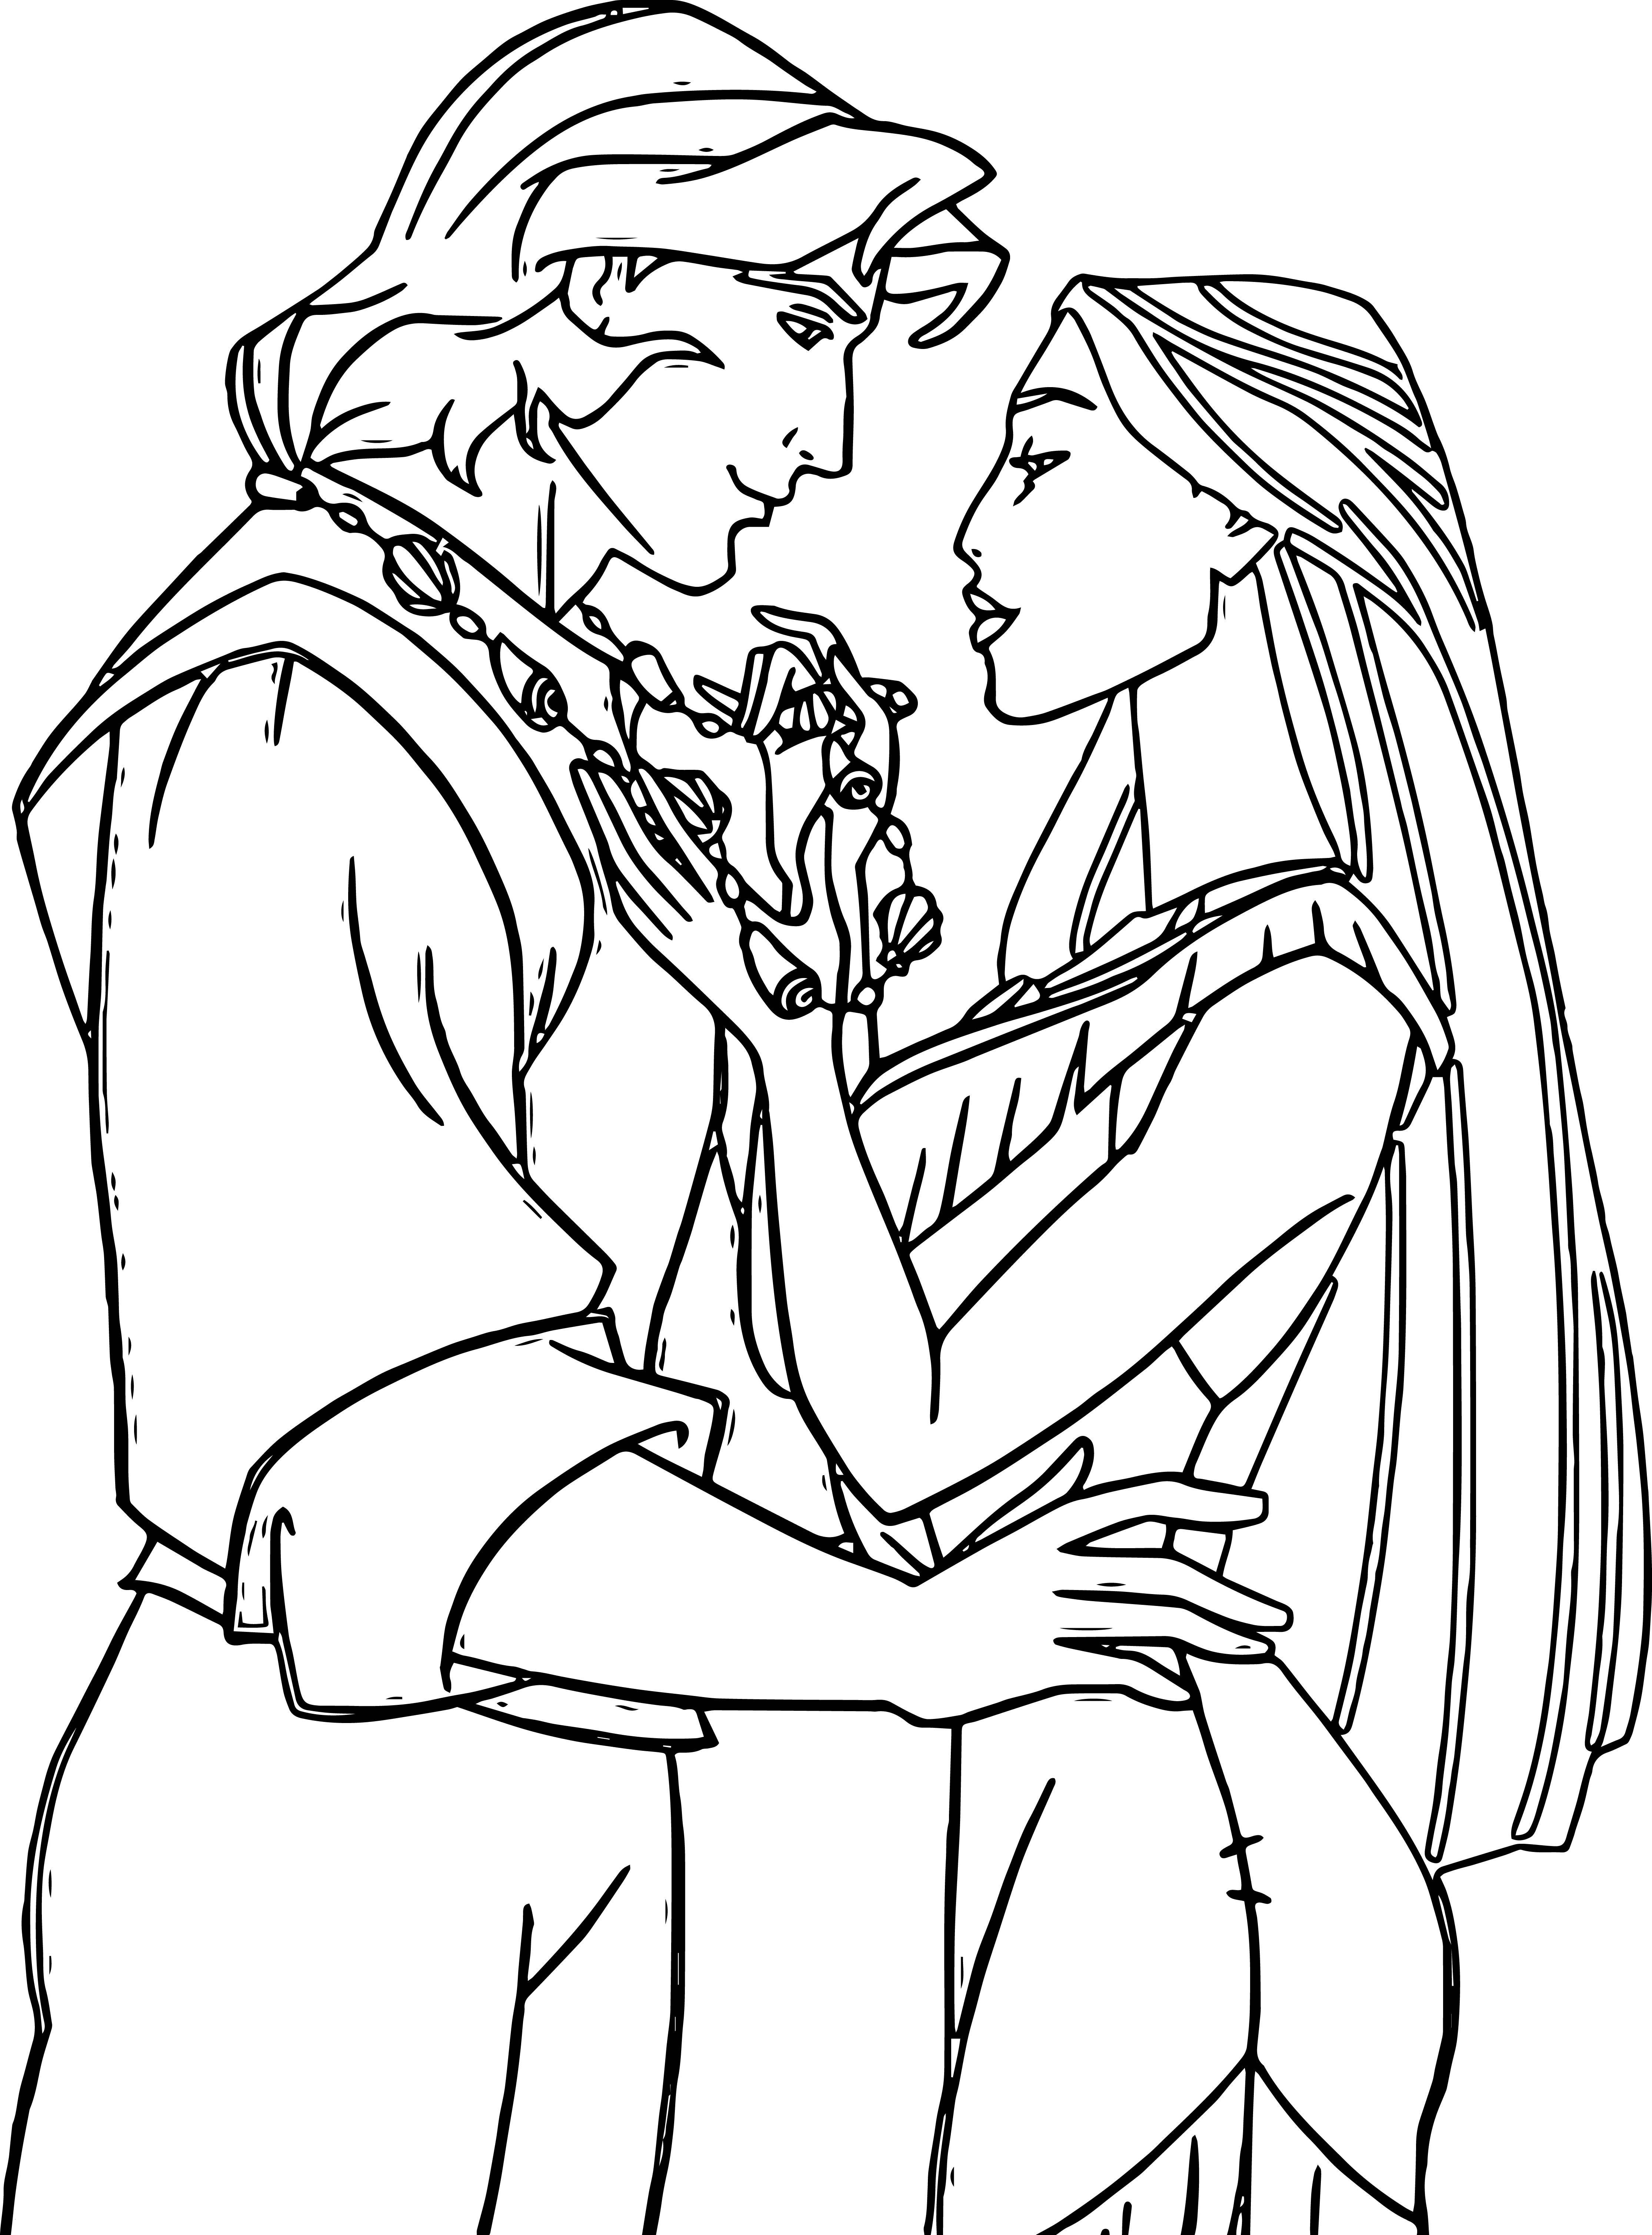 disney coloring pages pocahontas Collection-Pocahontas Coloring Book Pages Disney Coloring Pages Pocahontas Best Disney Coloring Pages 6-g